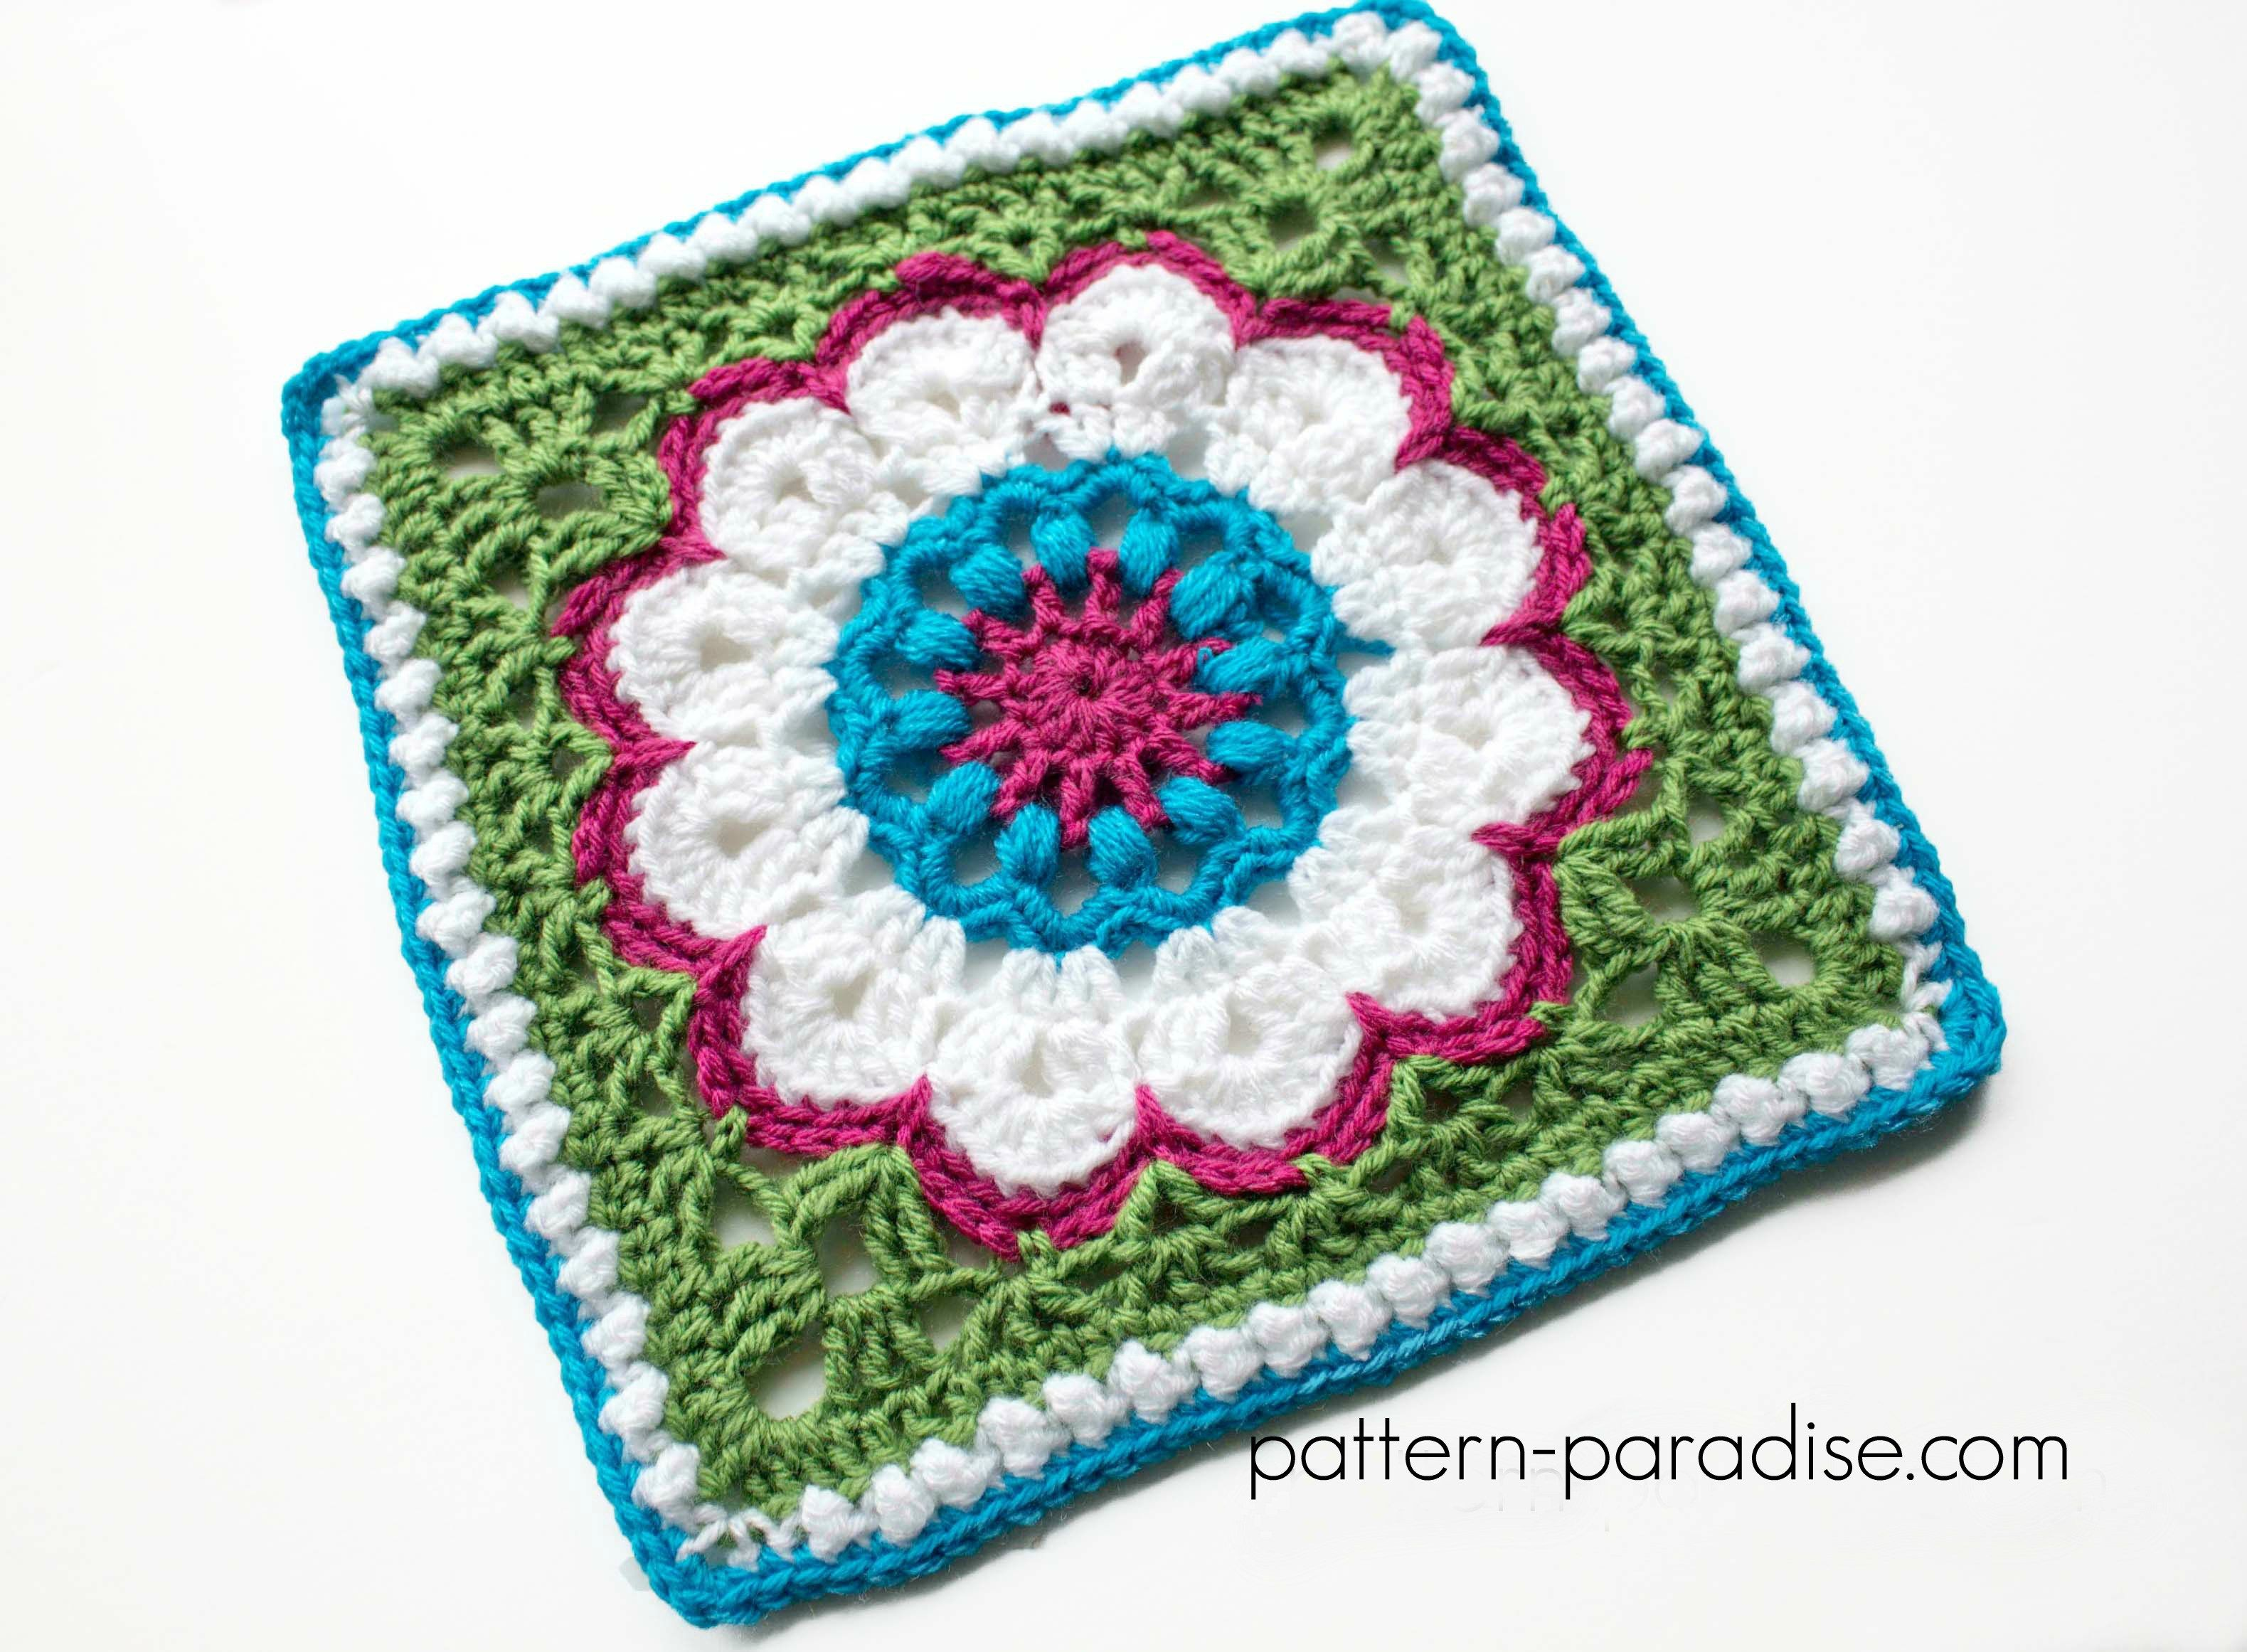 Crochet pattern for crochet square afghan square 12 square crochet pattern for crochet square afghan square 12 square blanket afghan bankloansurffo Image collections